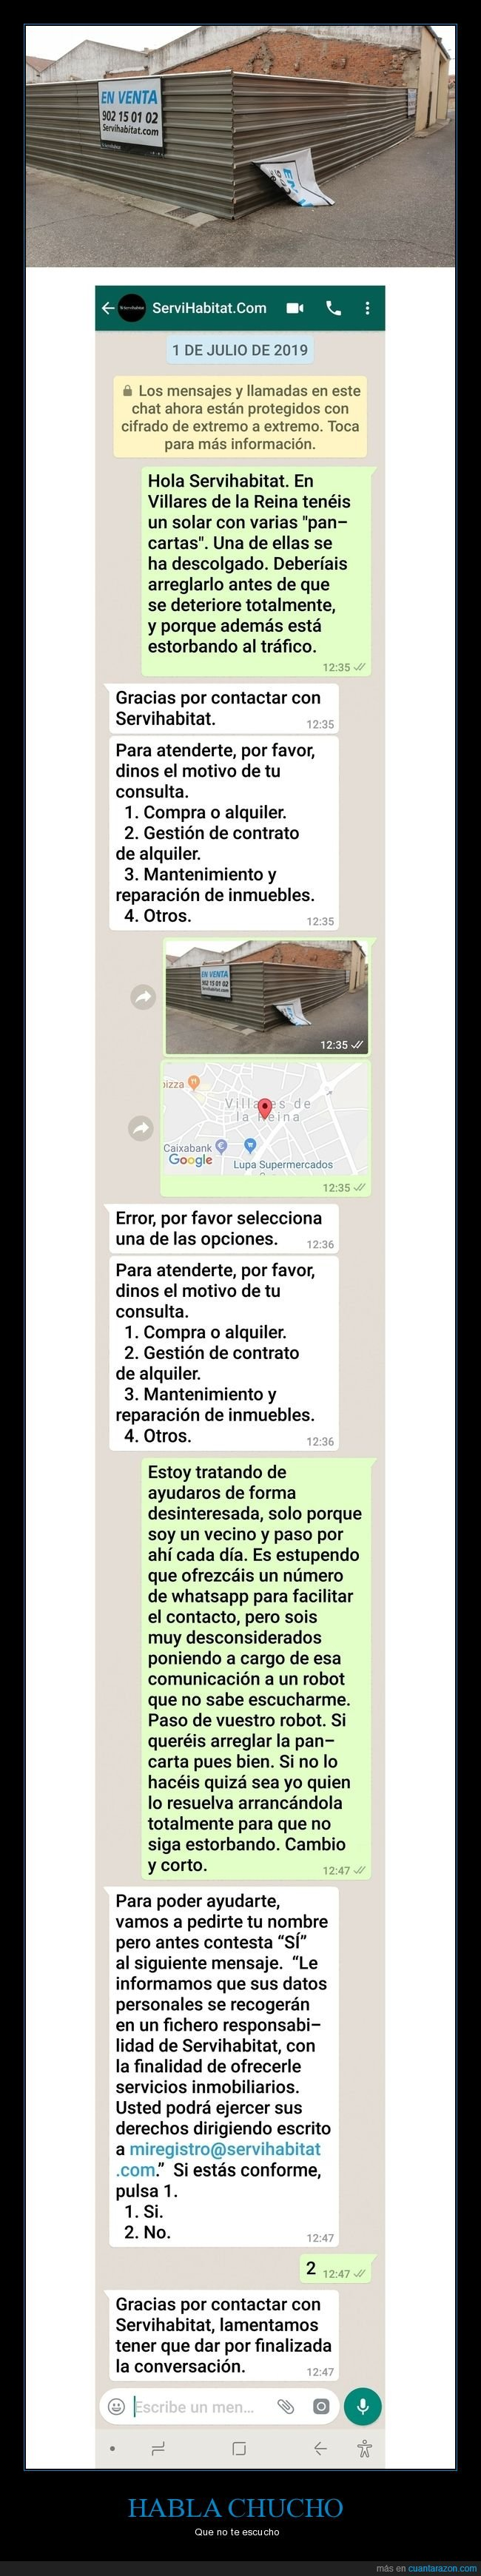 bot,servihabitat,whatsapp